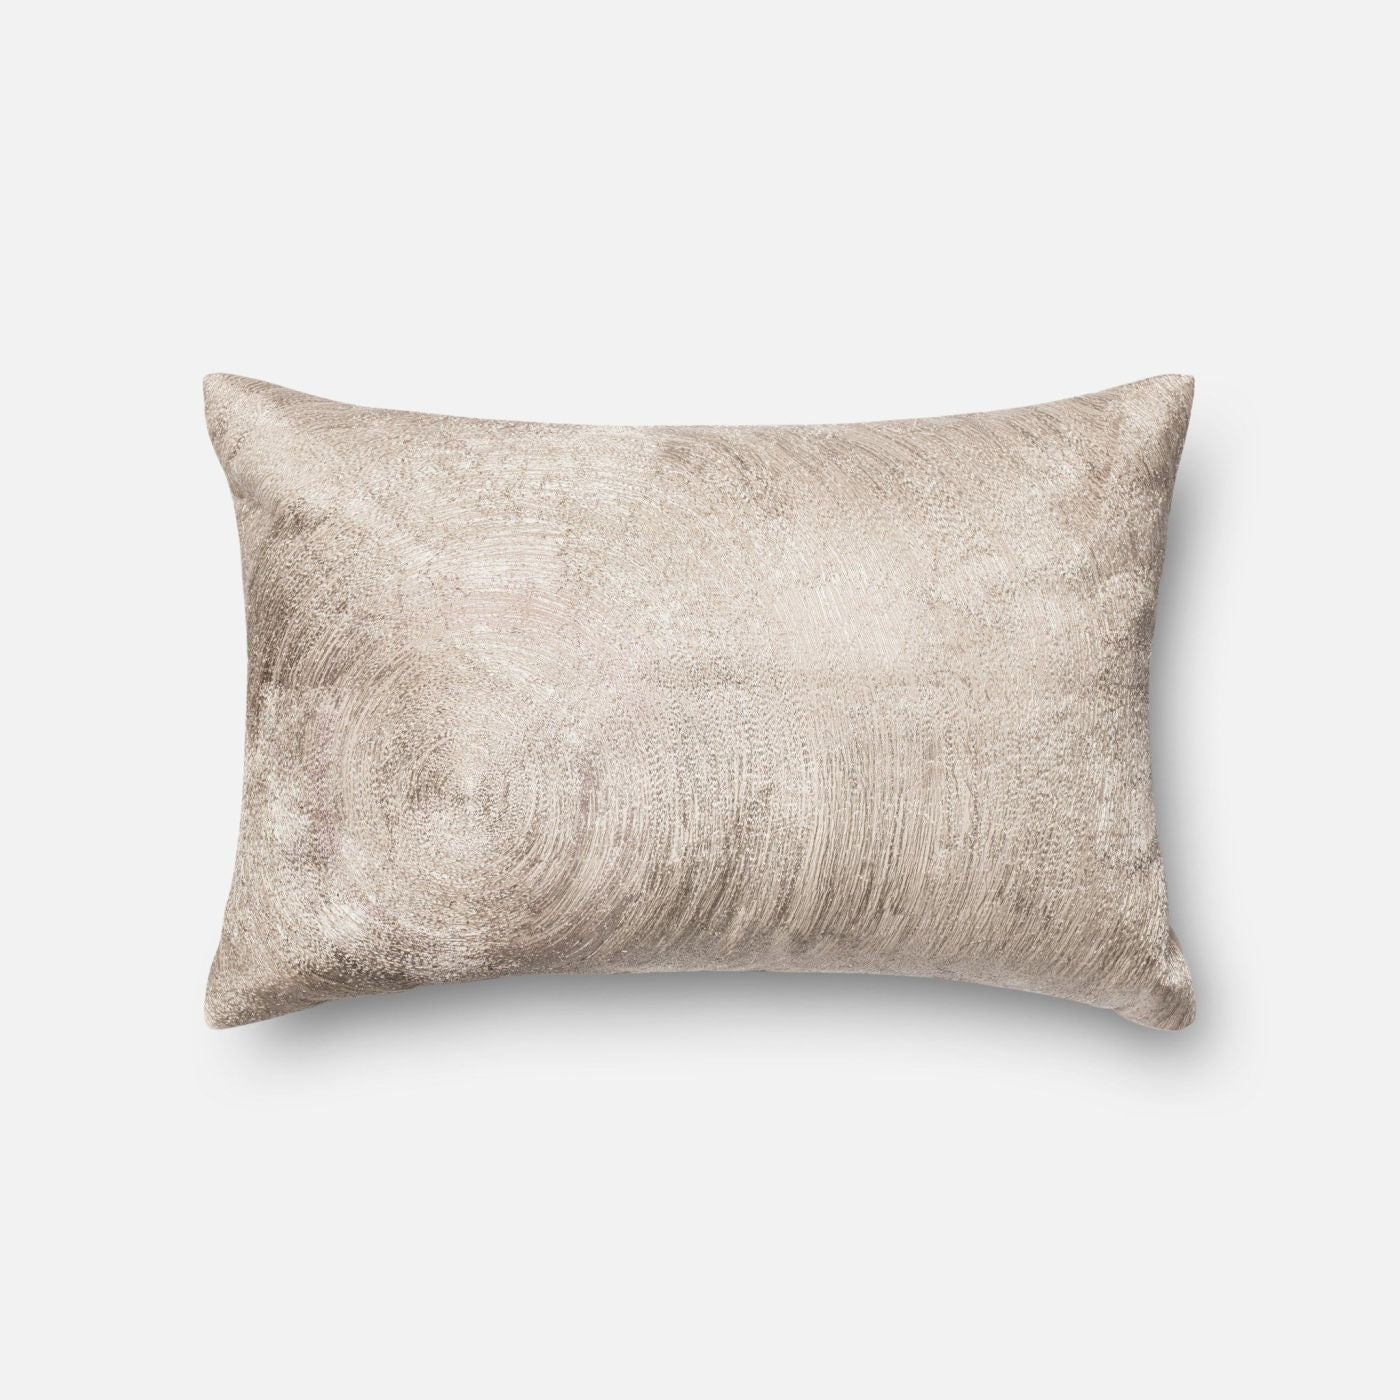 Throw Pillow Warehouse : Loloi Rugs Loloi Beige Decorative Throw Pillow (P0113) PSETP0113BE00PIL5. Only $59.00 at ...